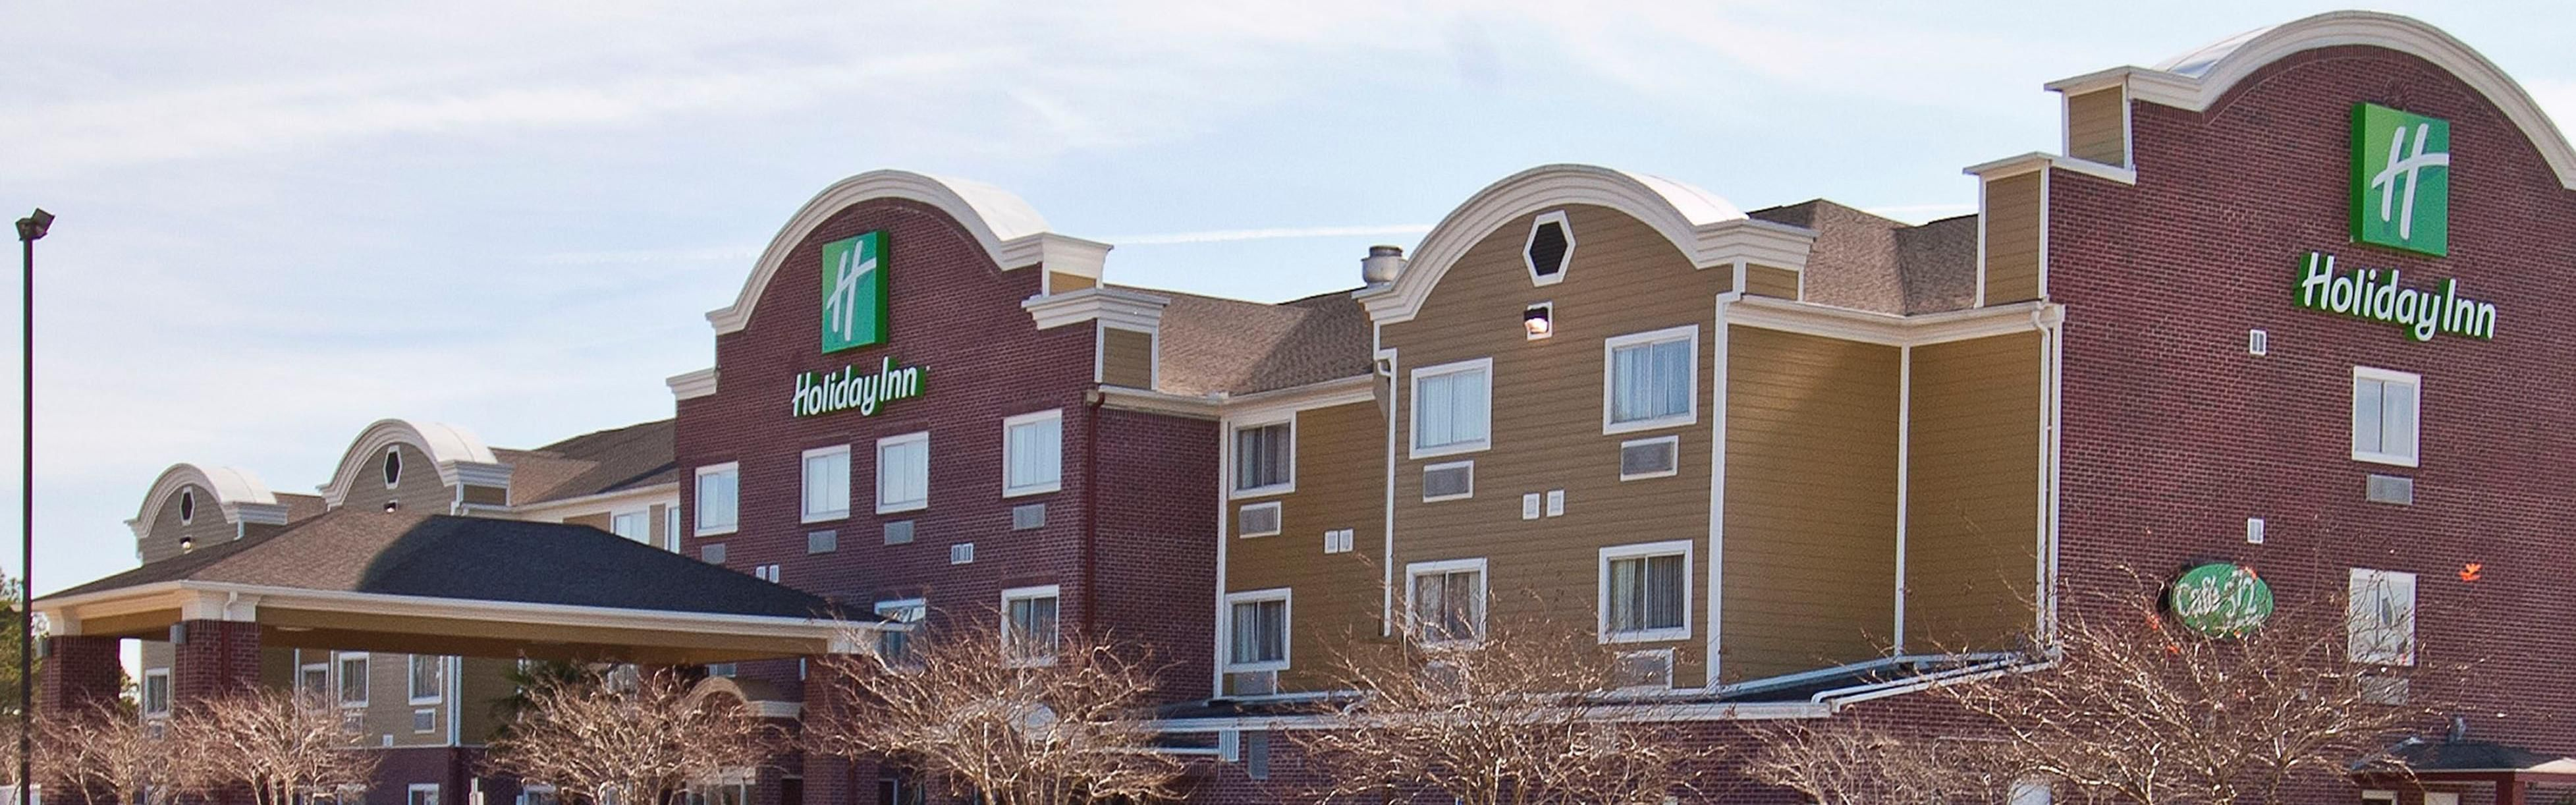 Affordable Holiday Inn Uamp Suites Slidell Laus Has Lots Of Truck With Hotels Near La